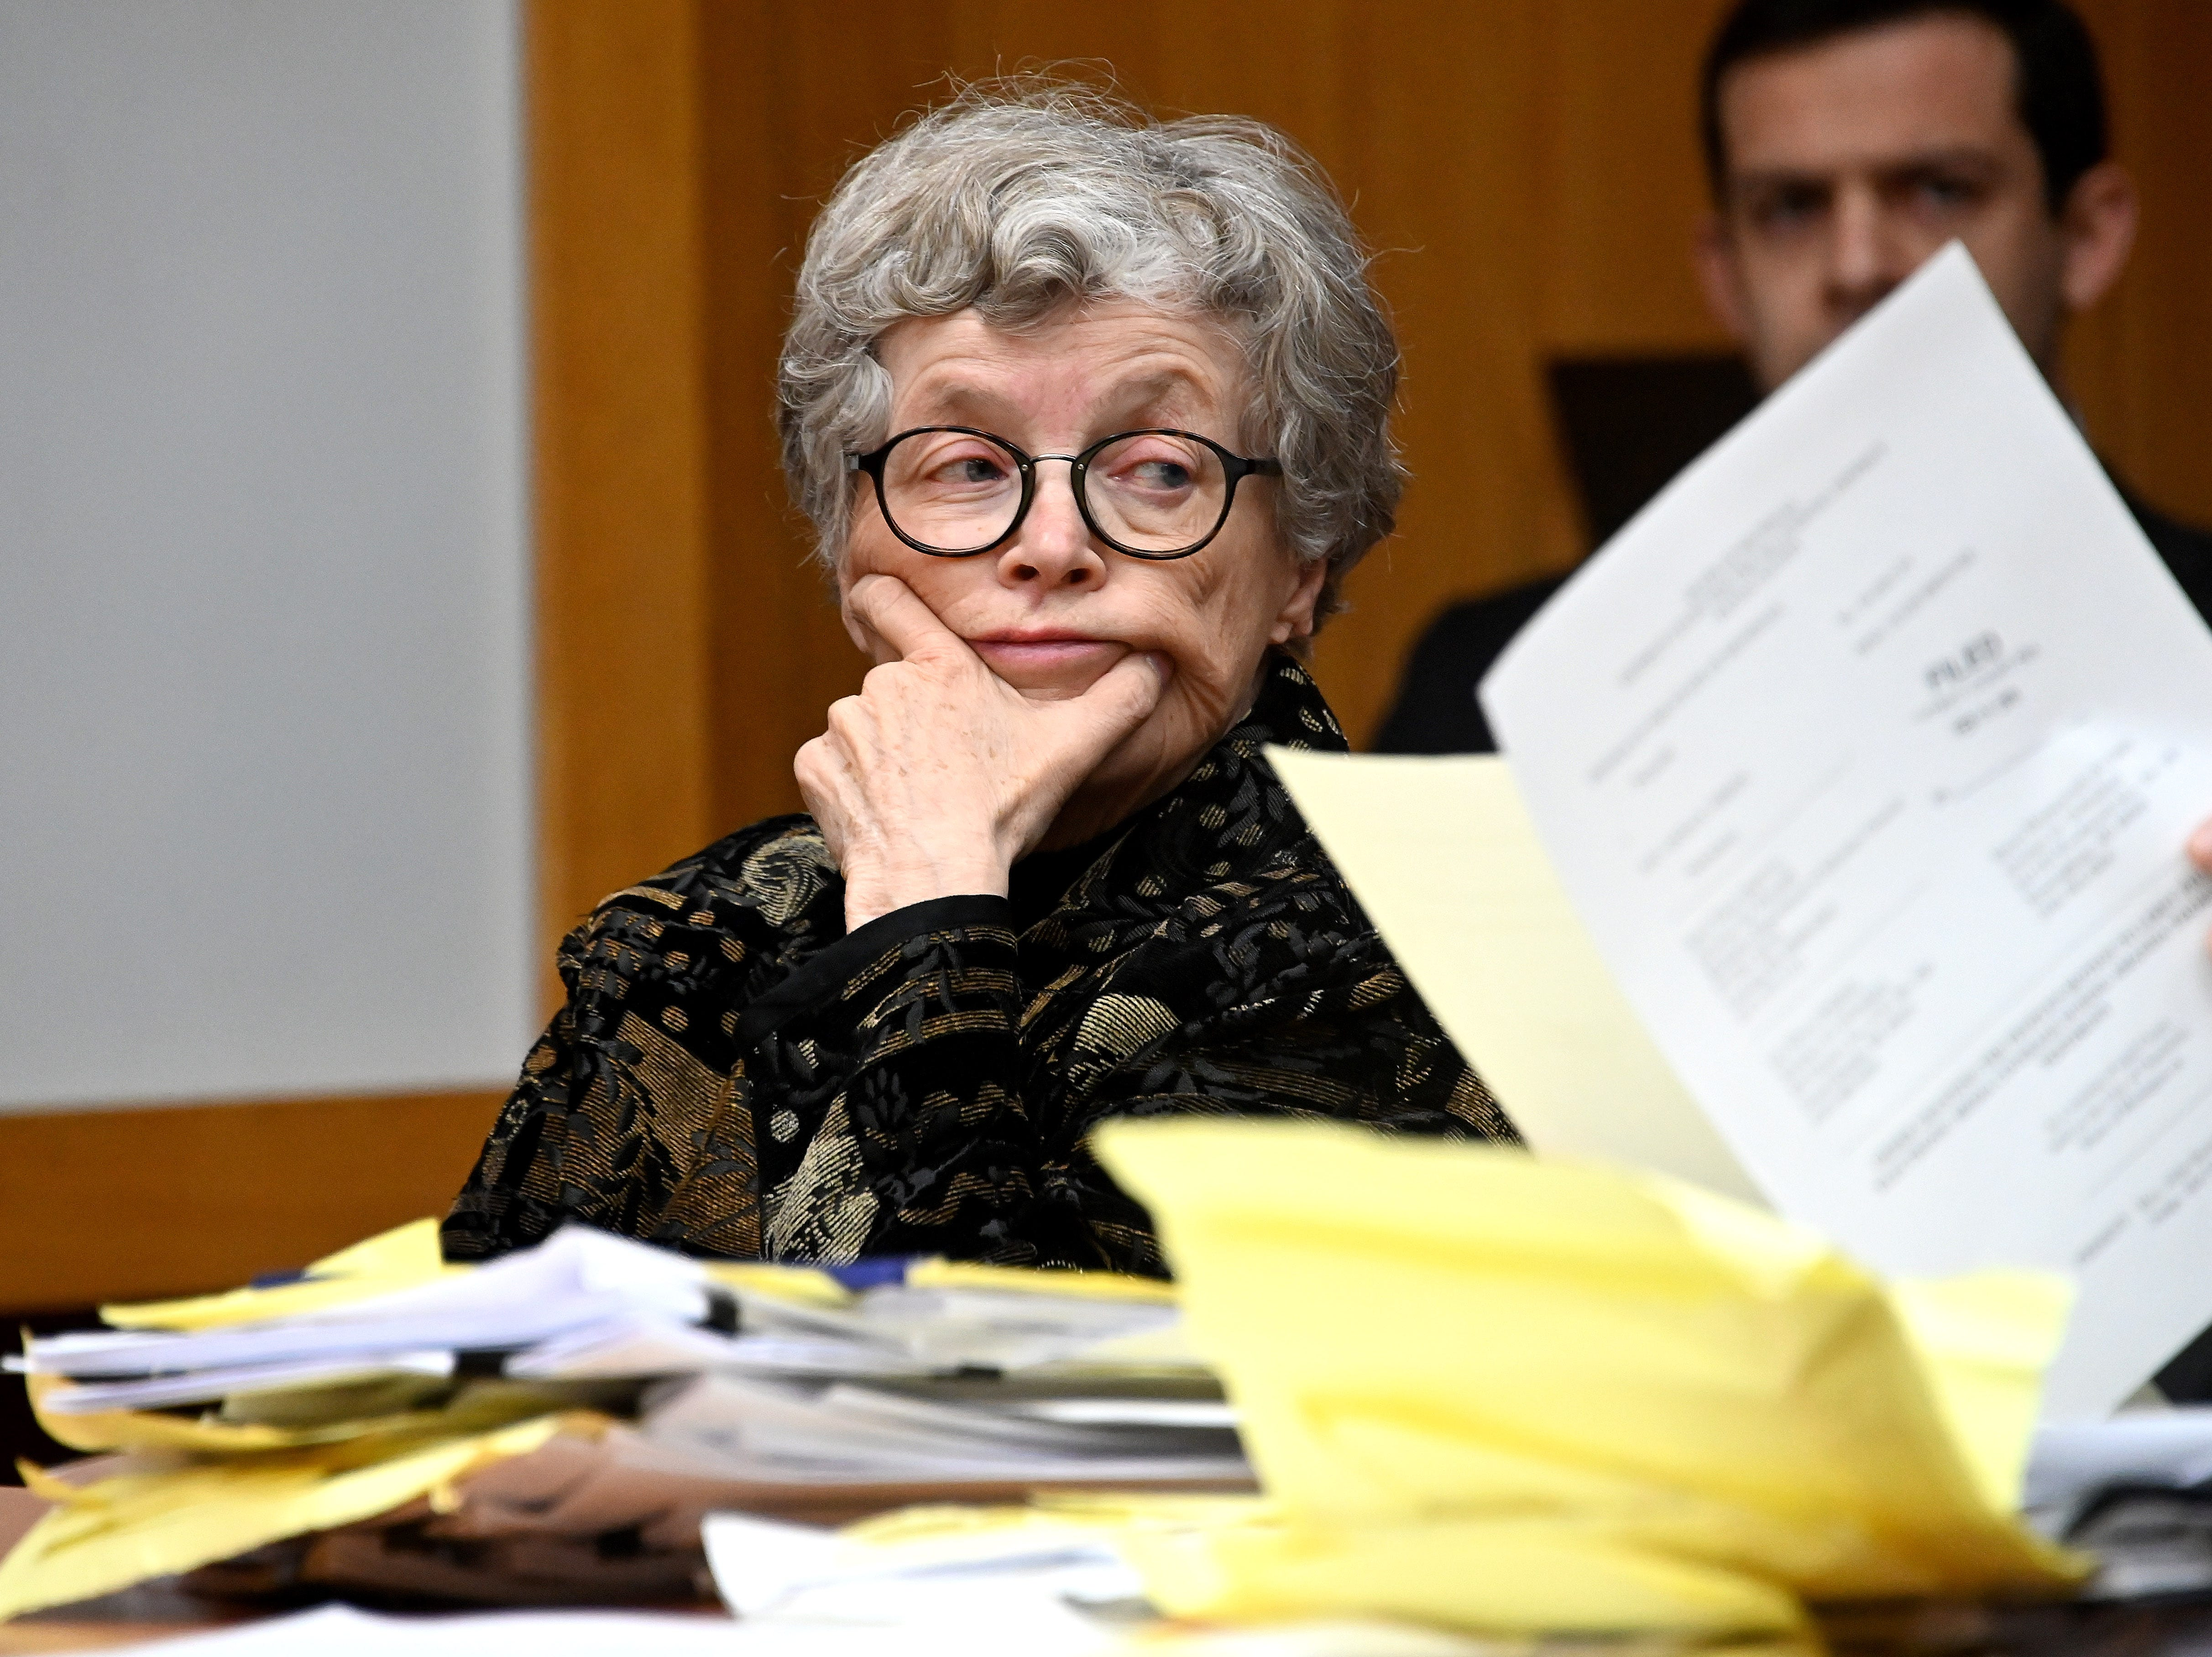 Lou Anna K. Simon looks at her attorney while sitting at the defense table at her pretrial hearing.